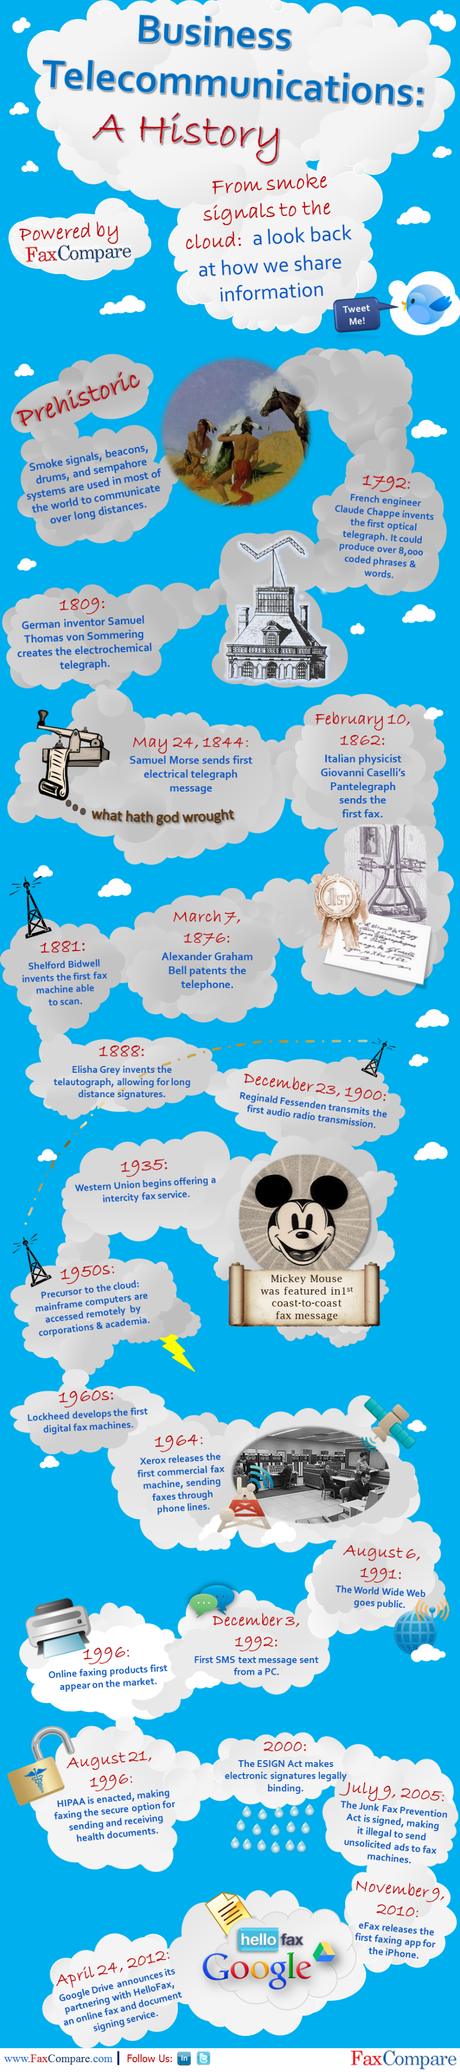 Infographic Timeline on Business Telecommunications